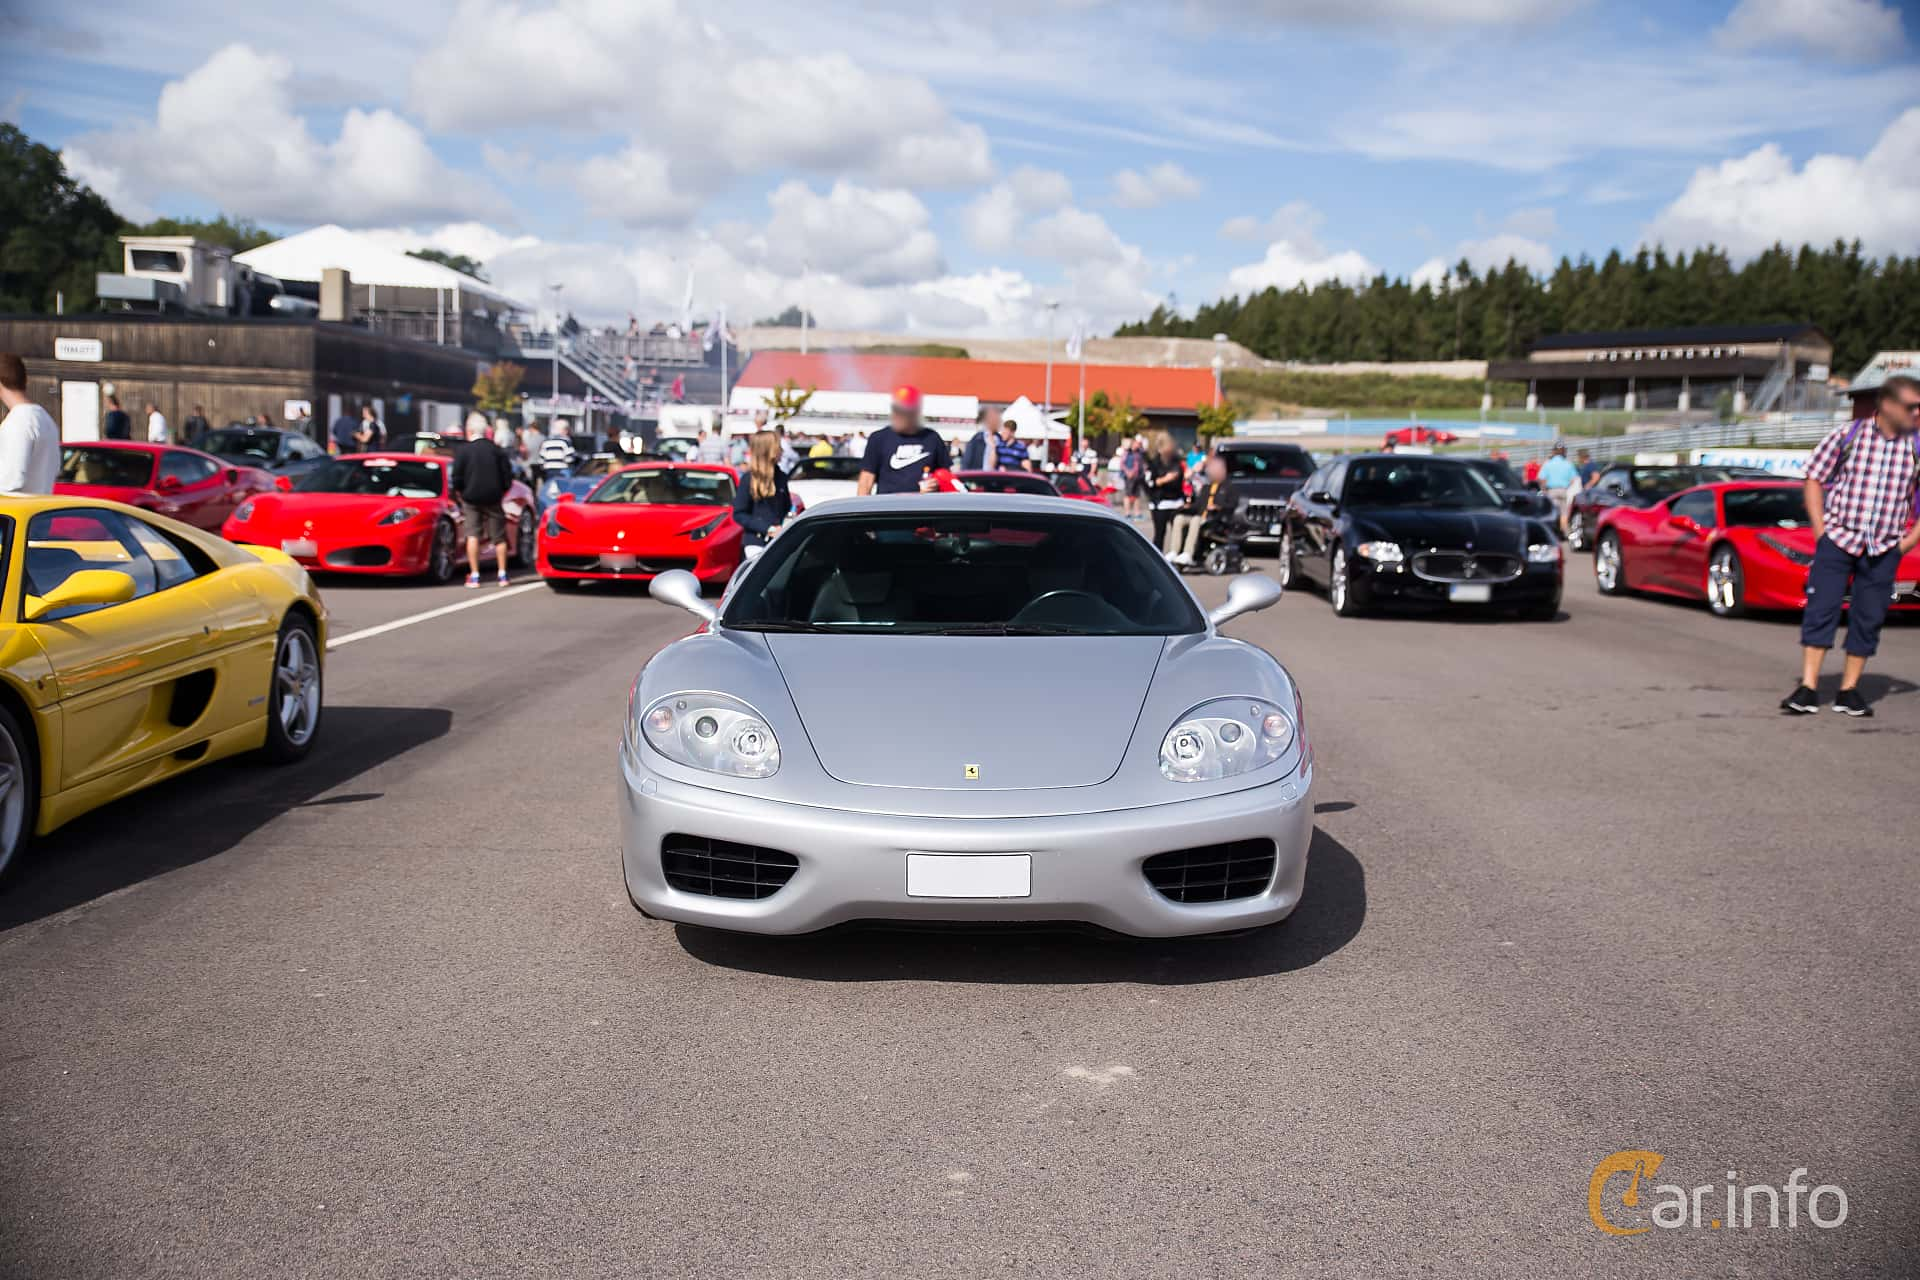 Ferrari 360 Modena 3.6 V8 Sequential, 400hp, 2001 at Autoropa Racing day Knutstorp 2017